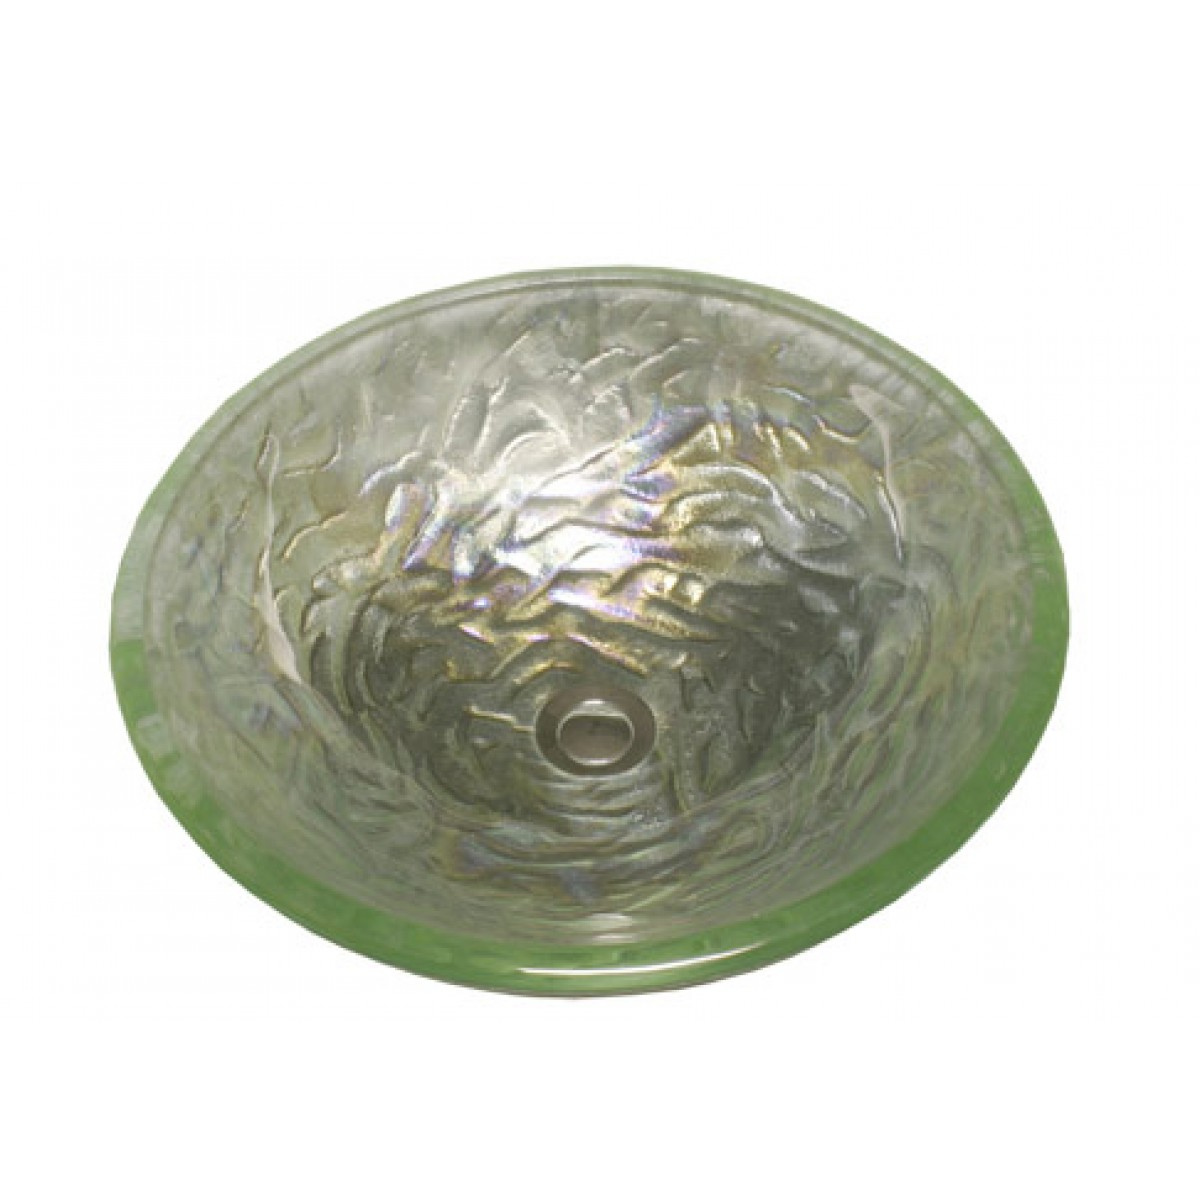 Pearl Lime Design Glass Countertop Bathroom Lavatory Vessel Sink   16 1/2 X  5 3/4 Inch Part 14